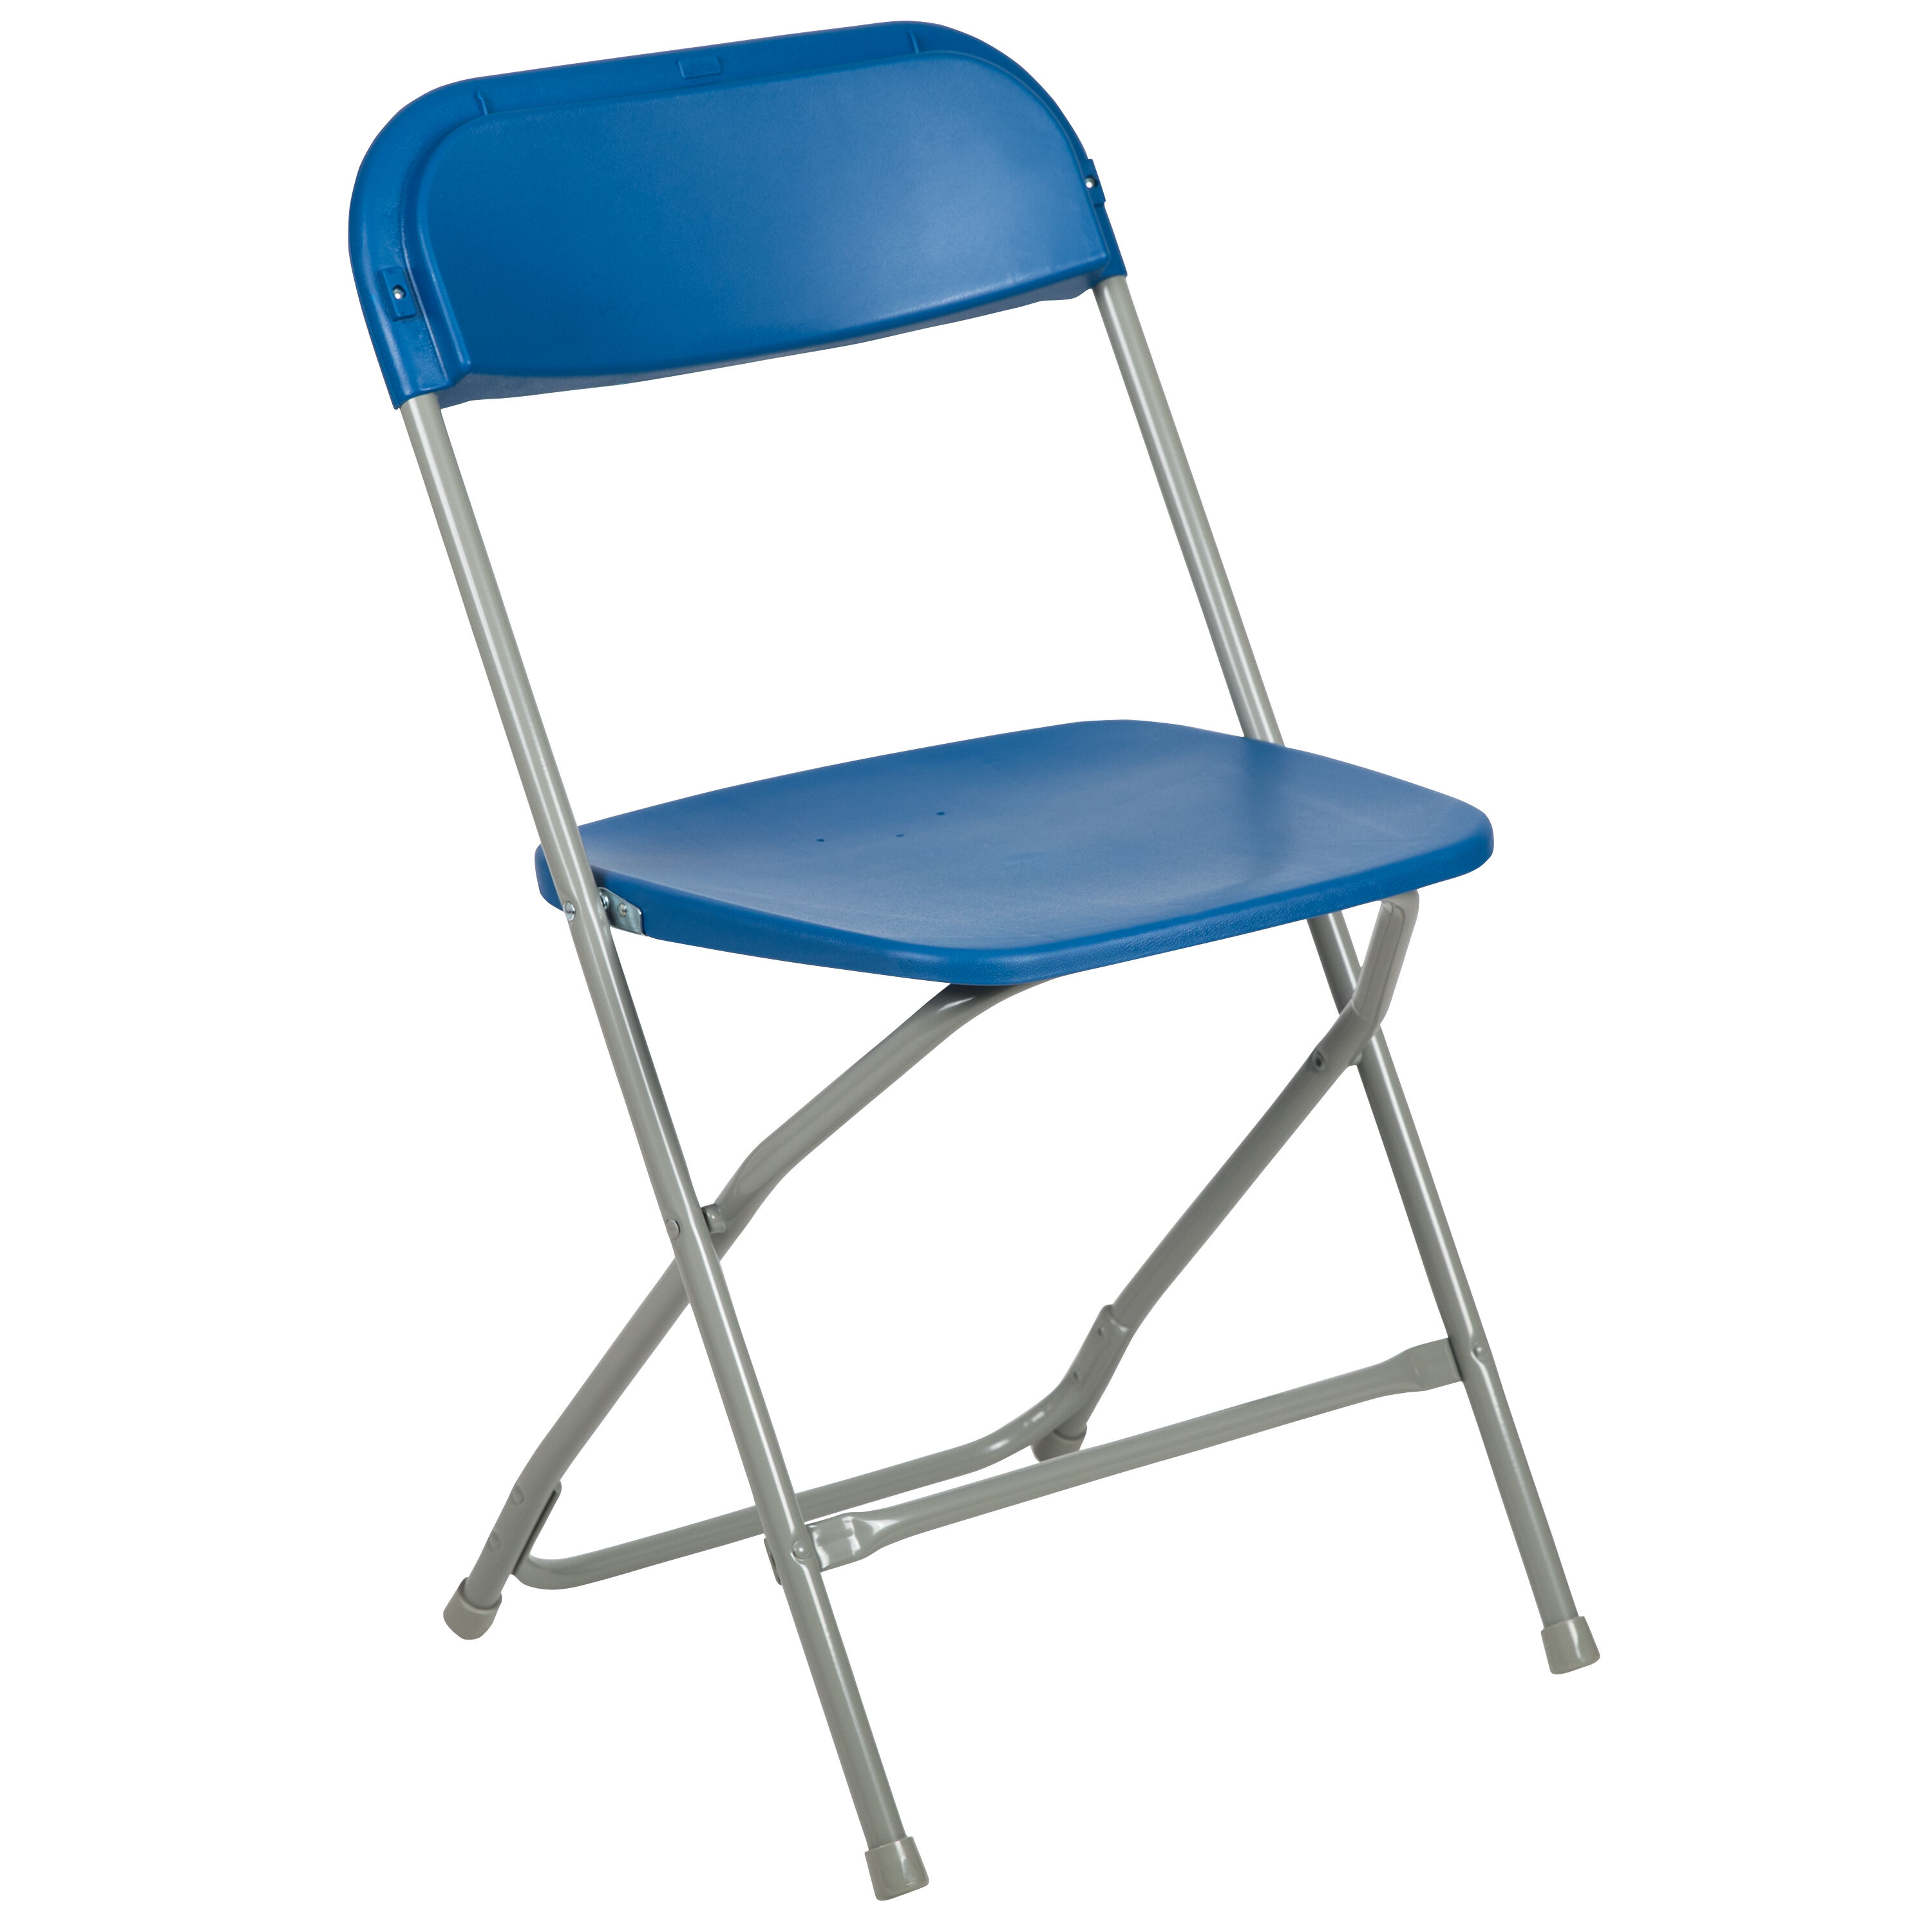 Capacity Premium Blue Plastic Folding Chair